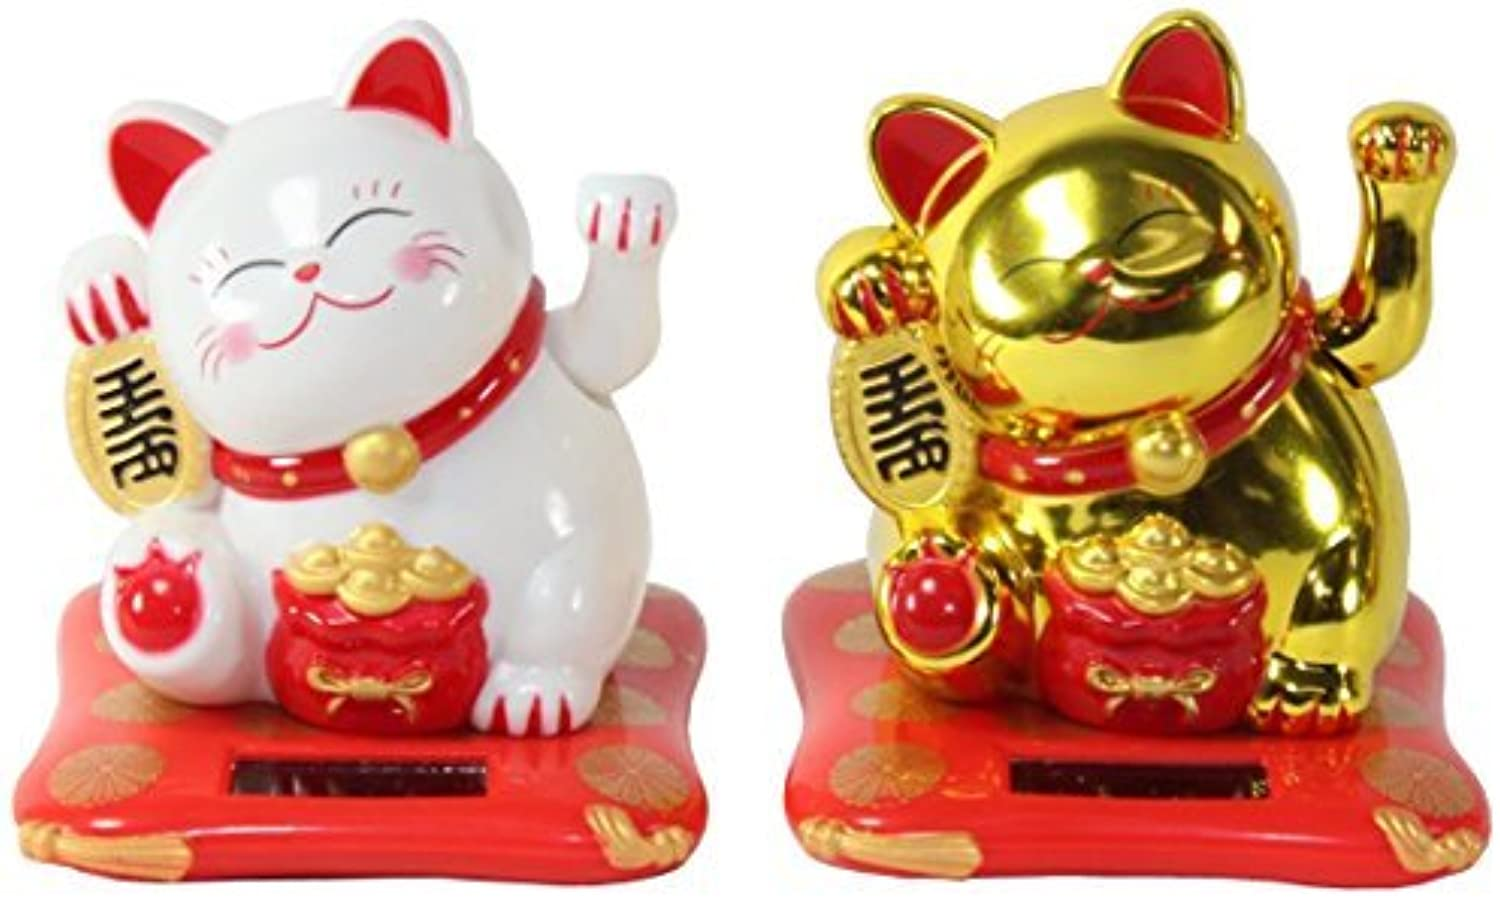 Set of 2 Small White & gold Happy Beckoning Fortune Happy Cats Maneki Neko Solar Toy Home Decor Business Part Gift We Pay Your Sales Tax by We pay your sales tax